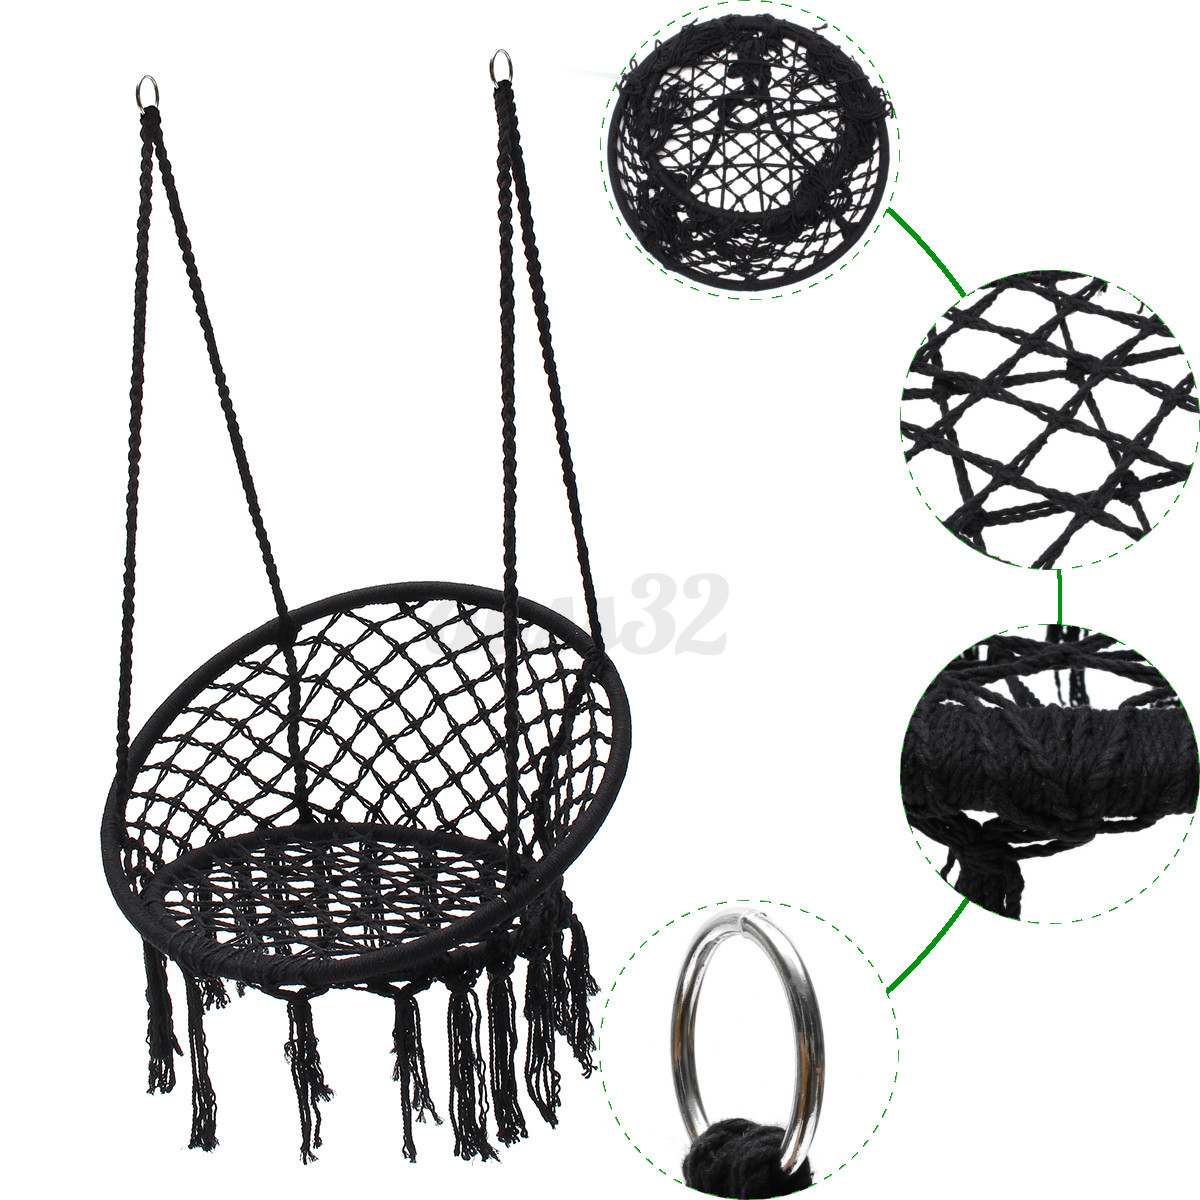 hanging chair ebay office overstock black cotton rope macrame hammock swing